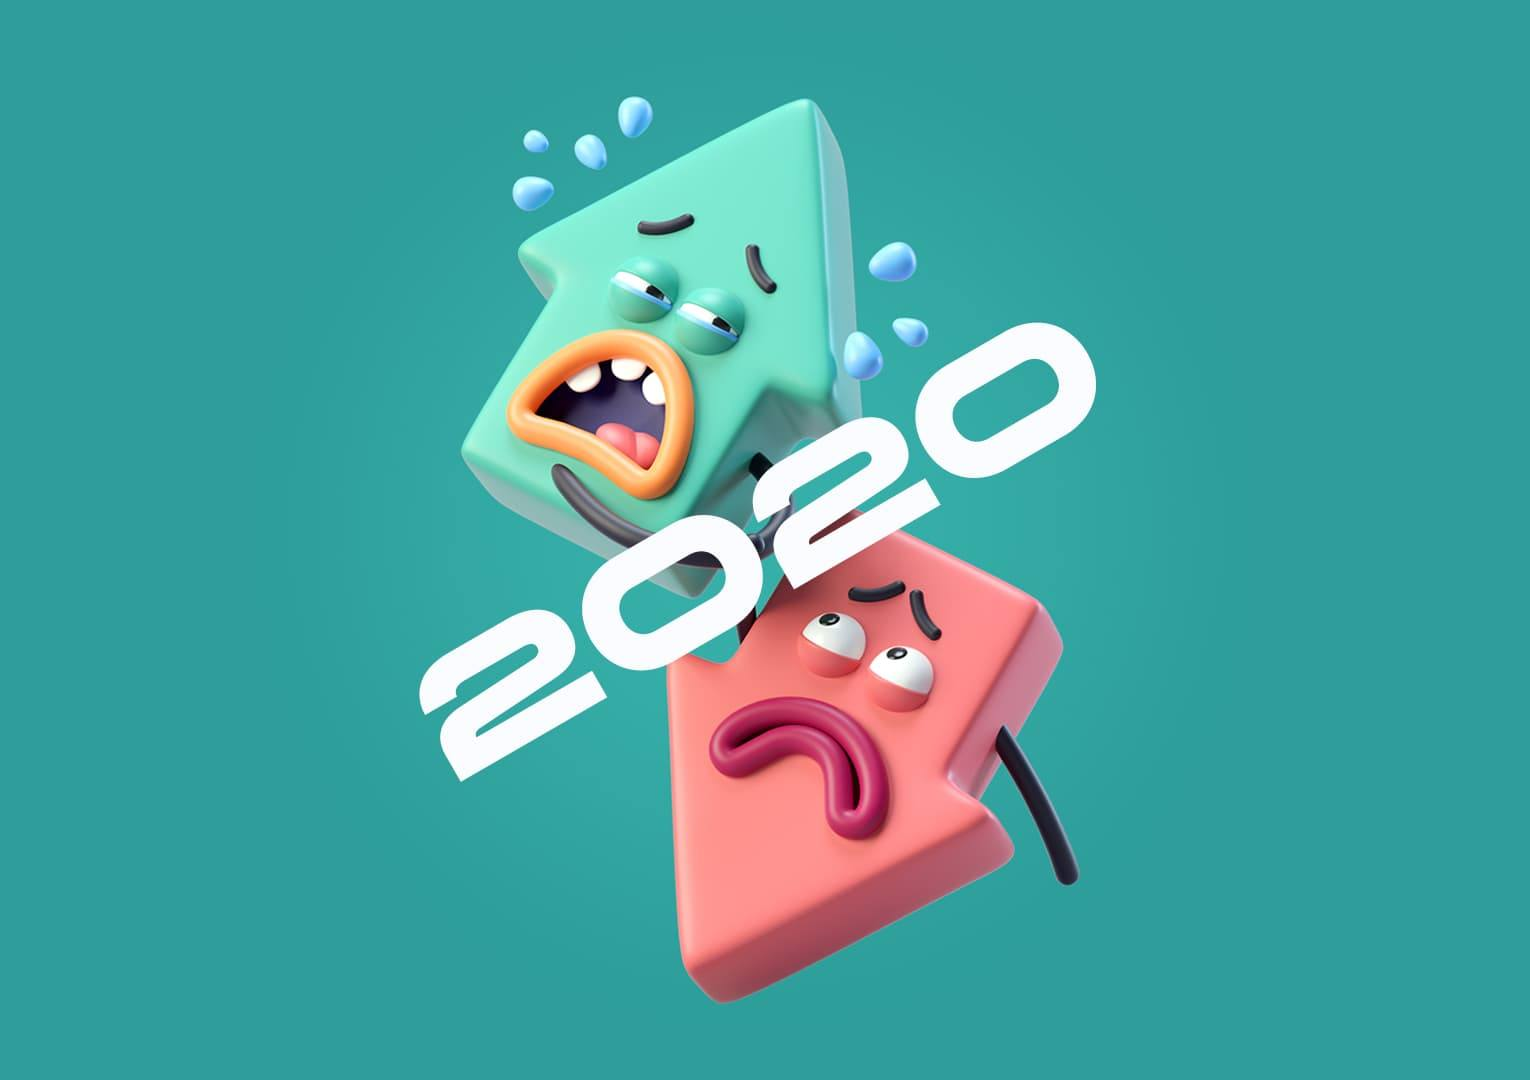 Design trend 2020: 3D Illustrations